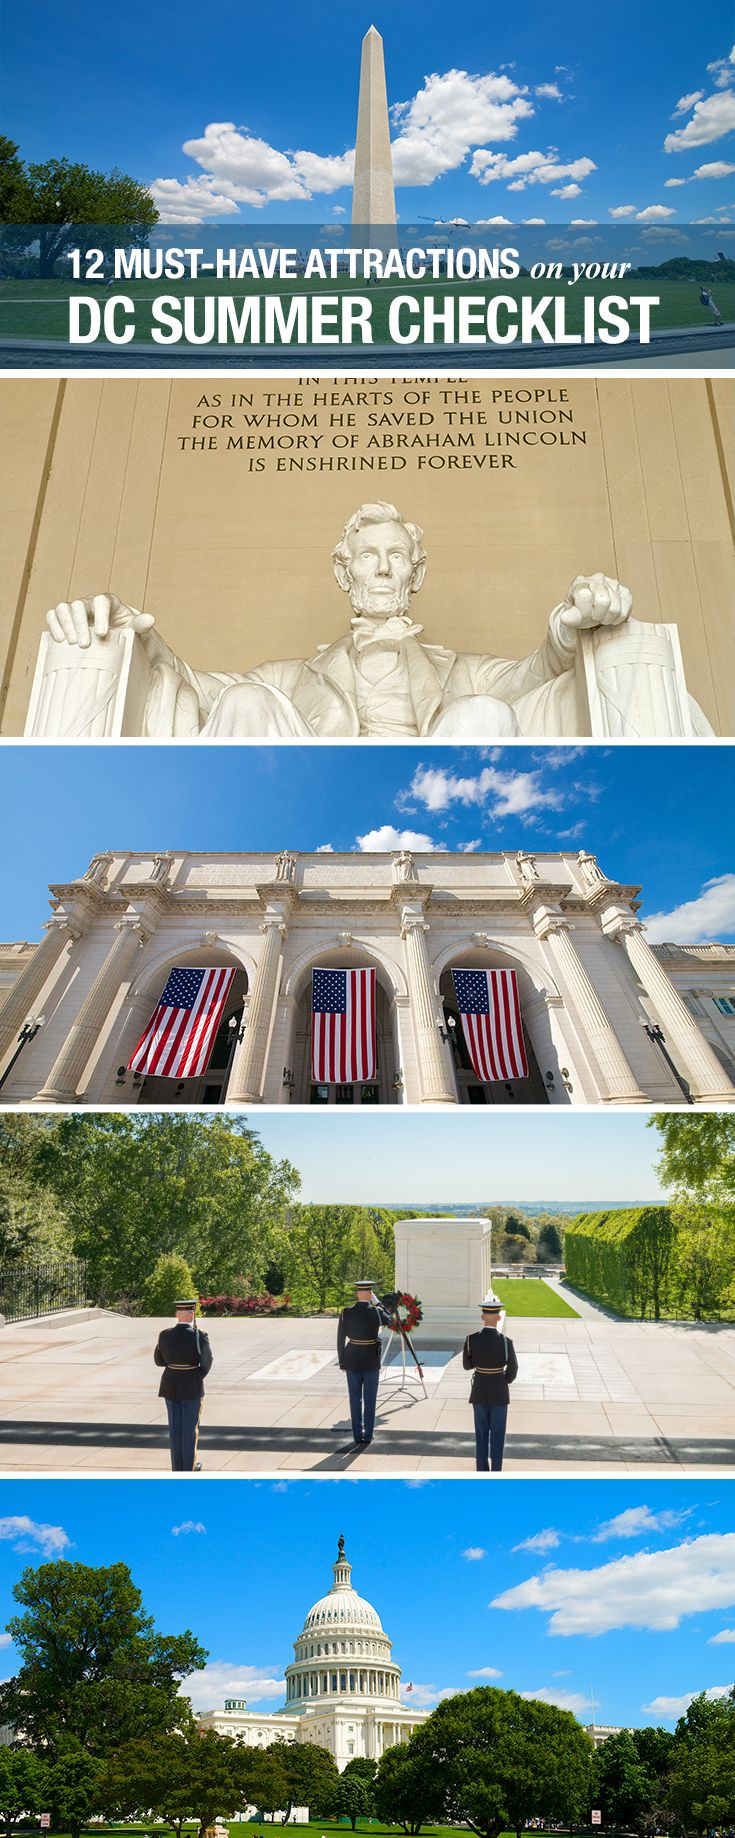 Washington Dc Map Of Attractions%0A Things to do in Washington DC in the summer  Here are a few of our favorite  touristy spots you have to visit next time you u    re in DC